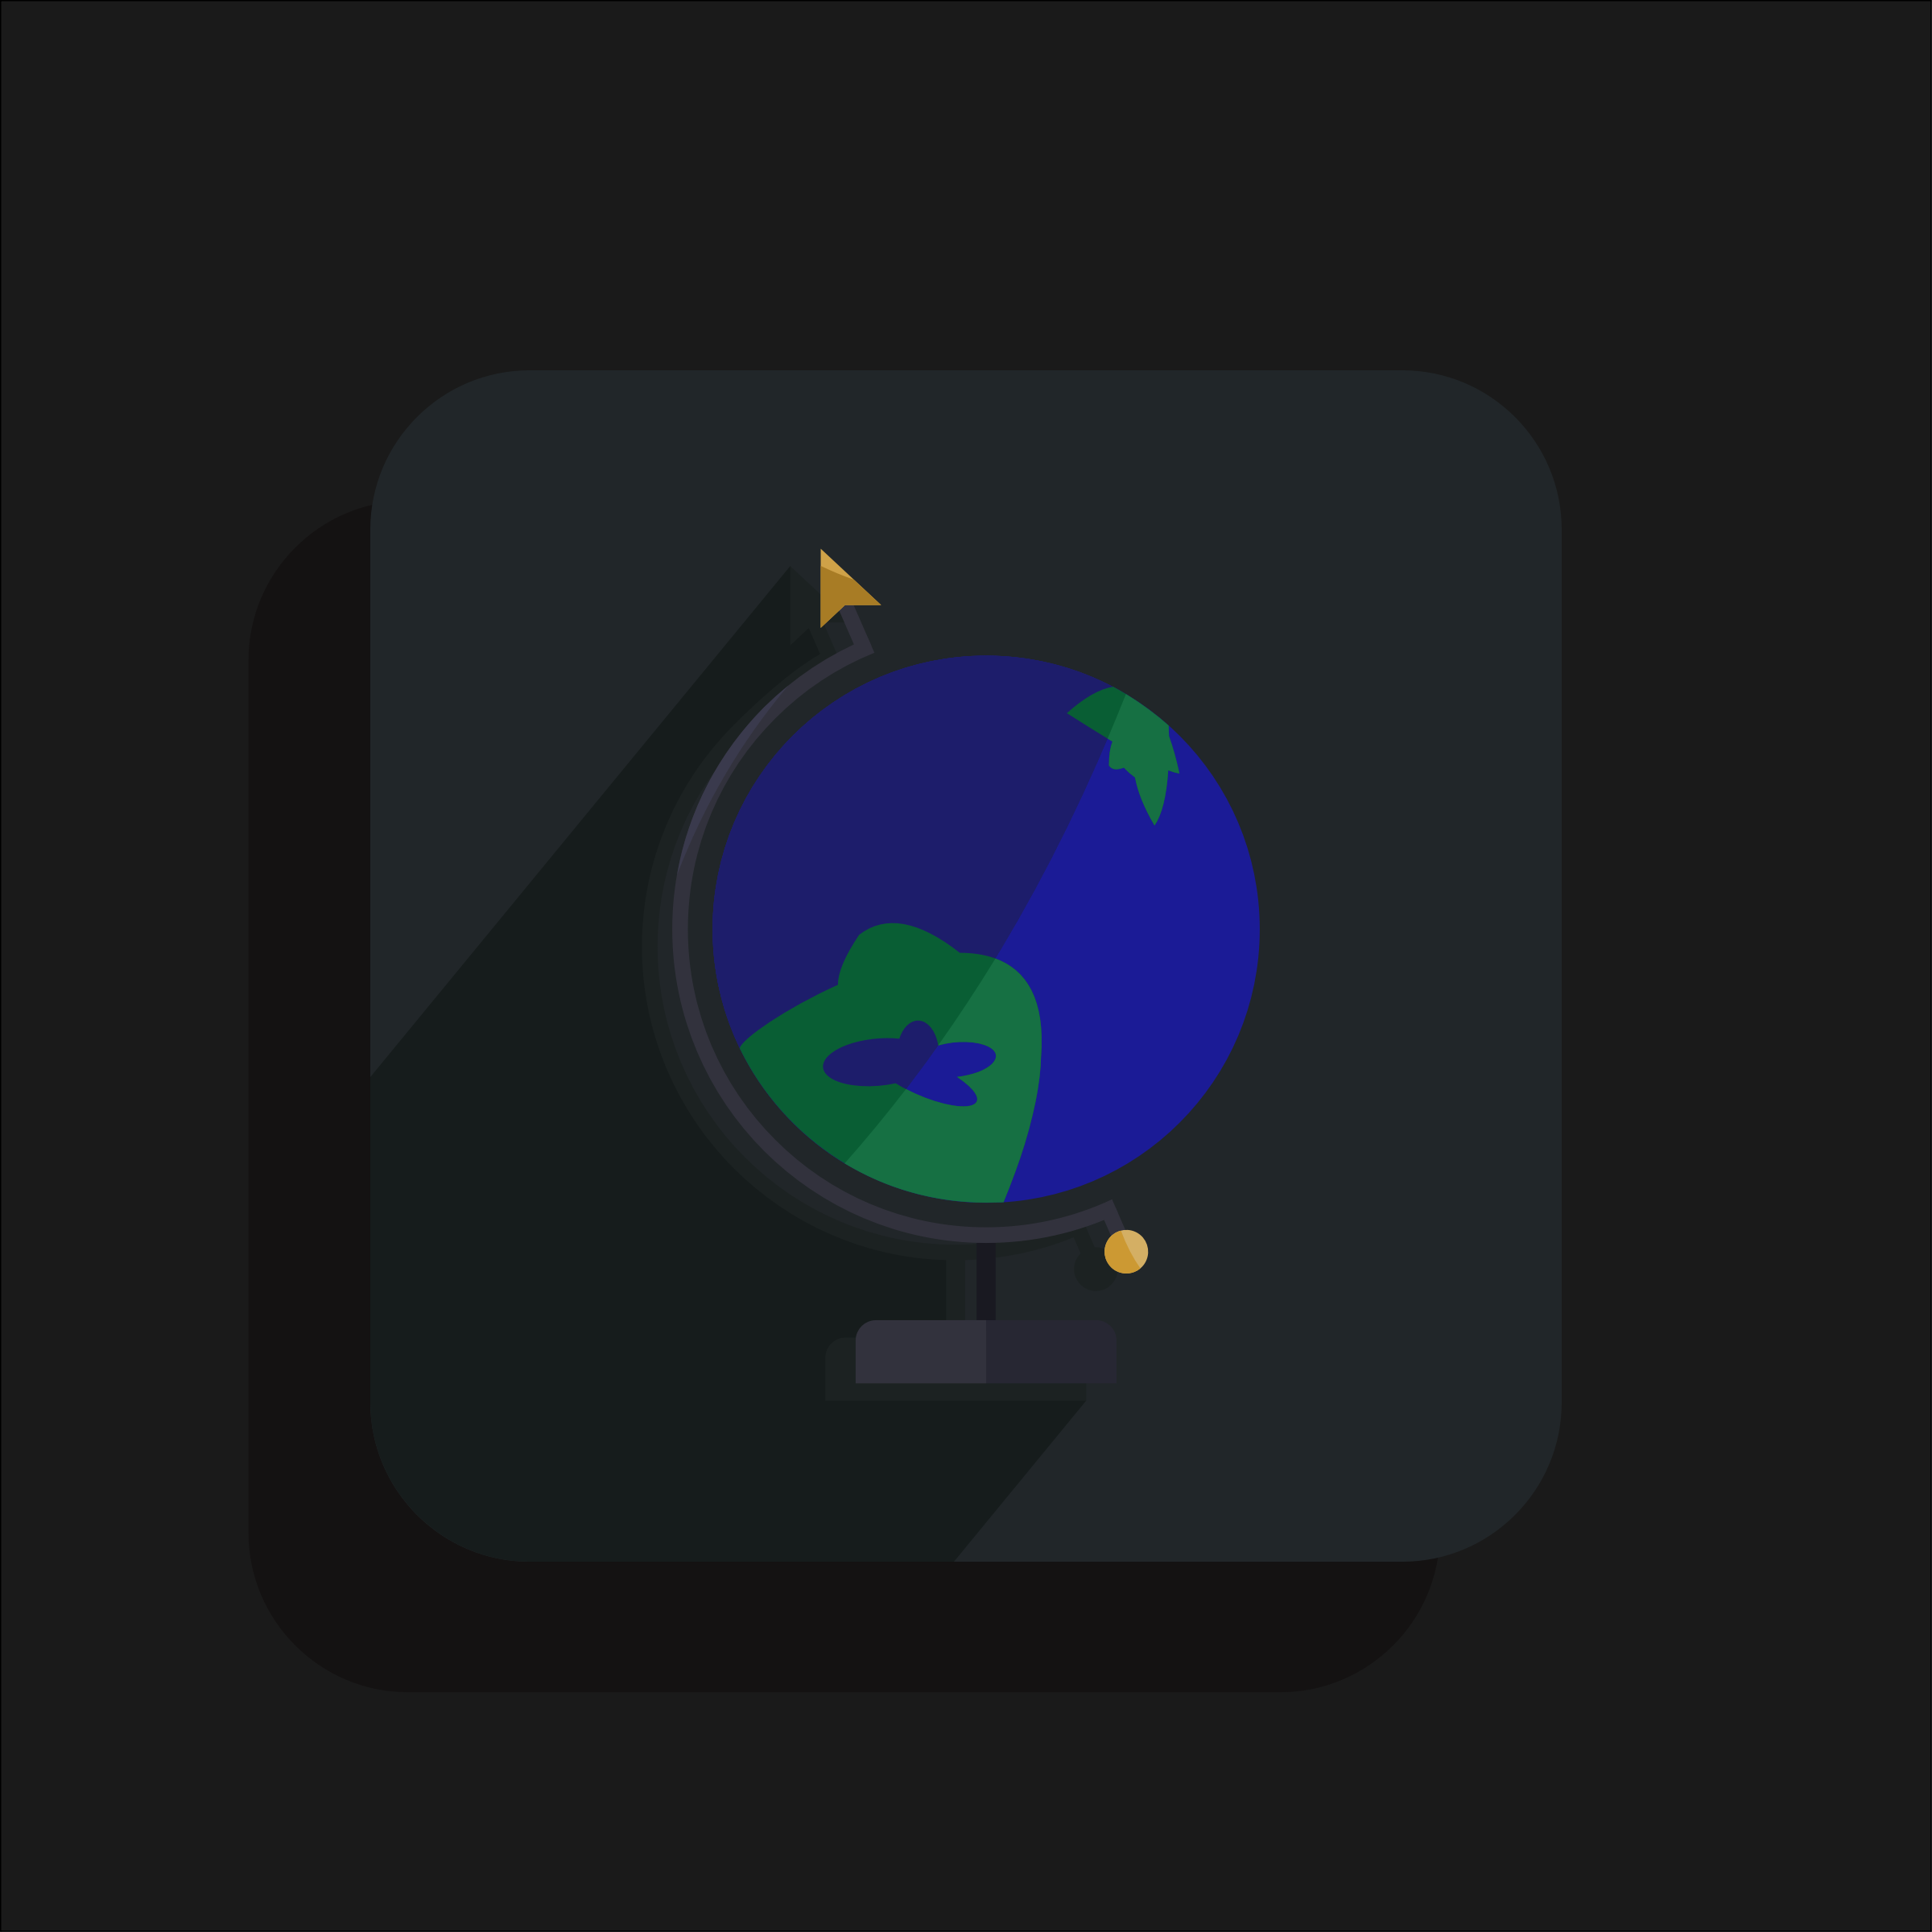 Inaccurate Globe Icon by barrettward